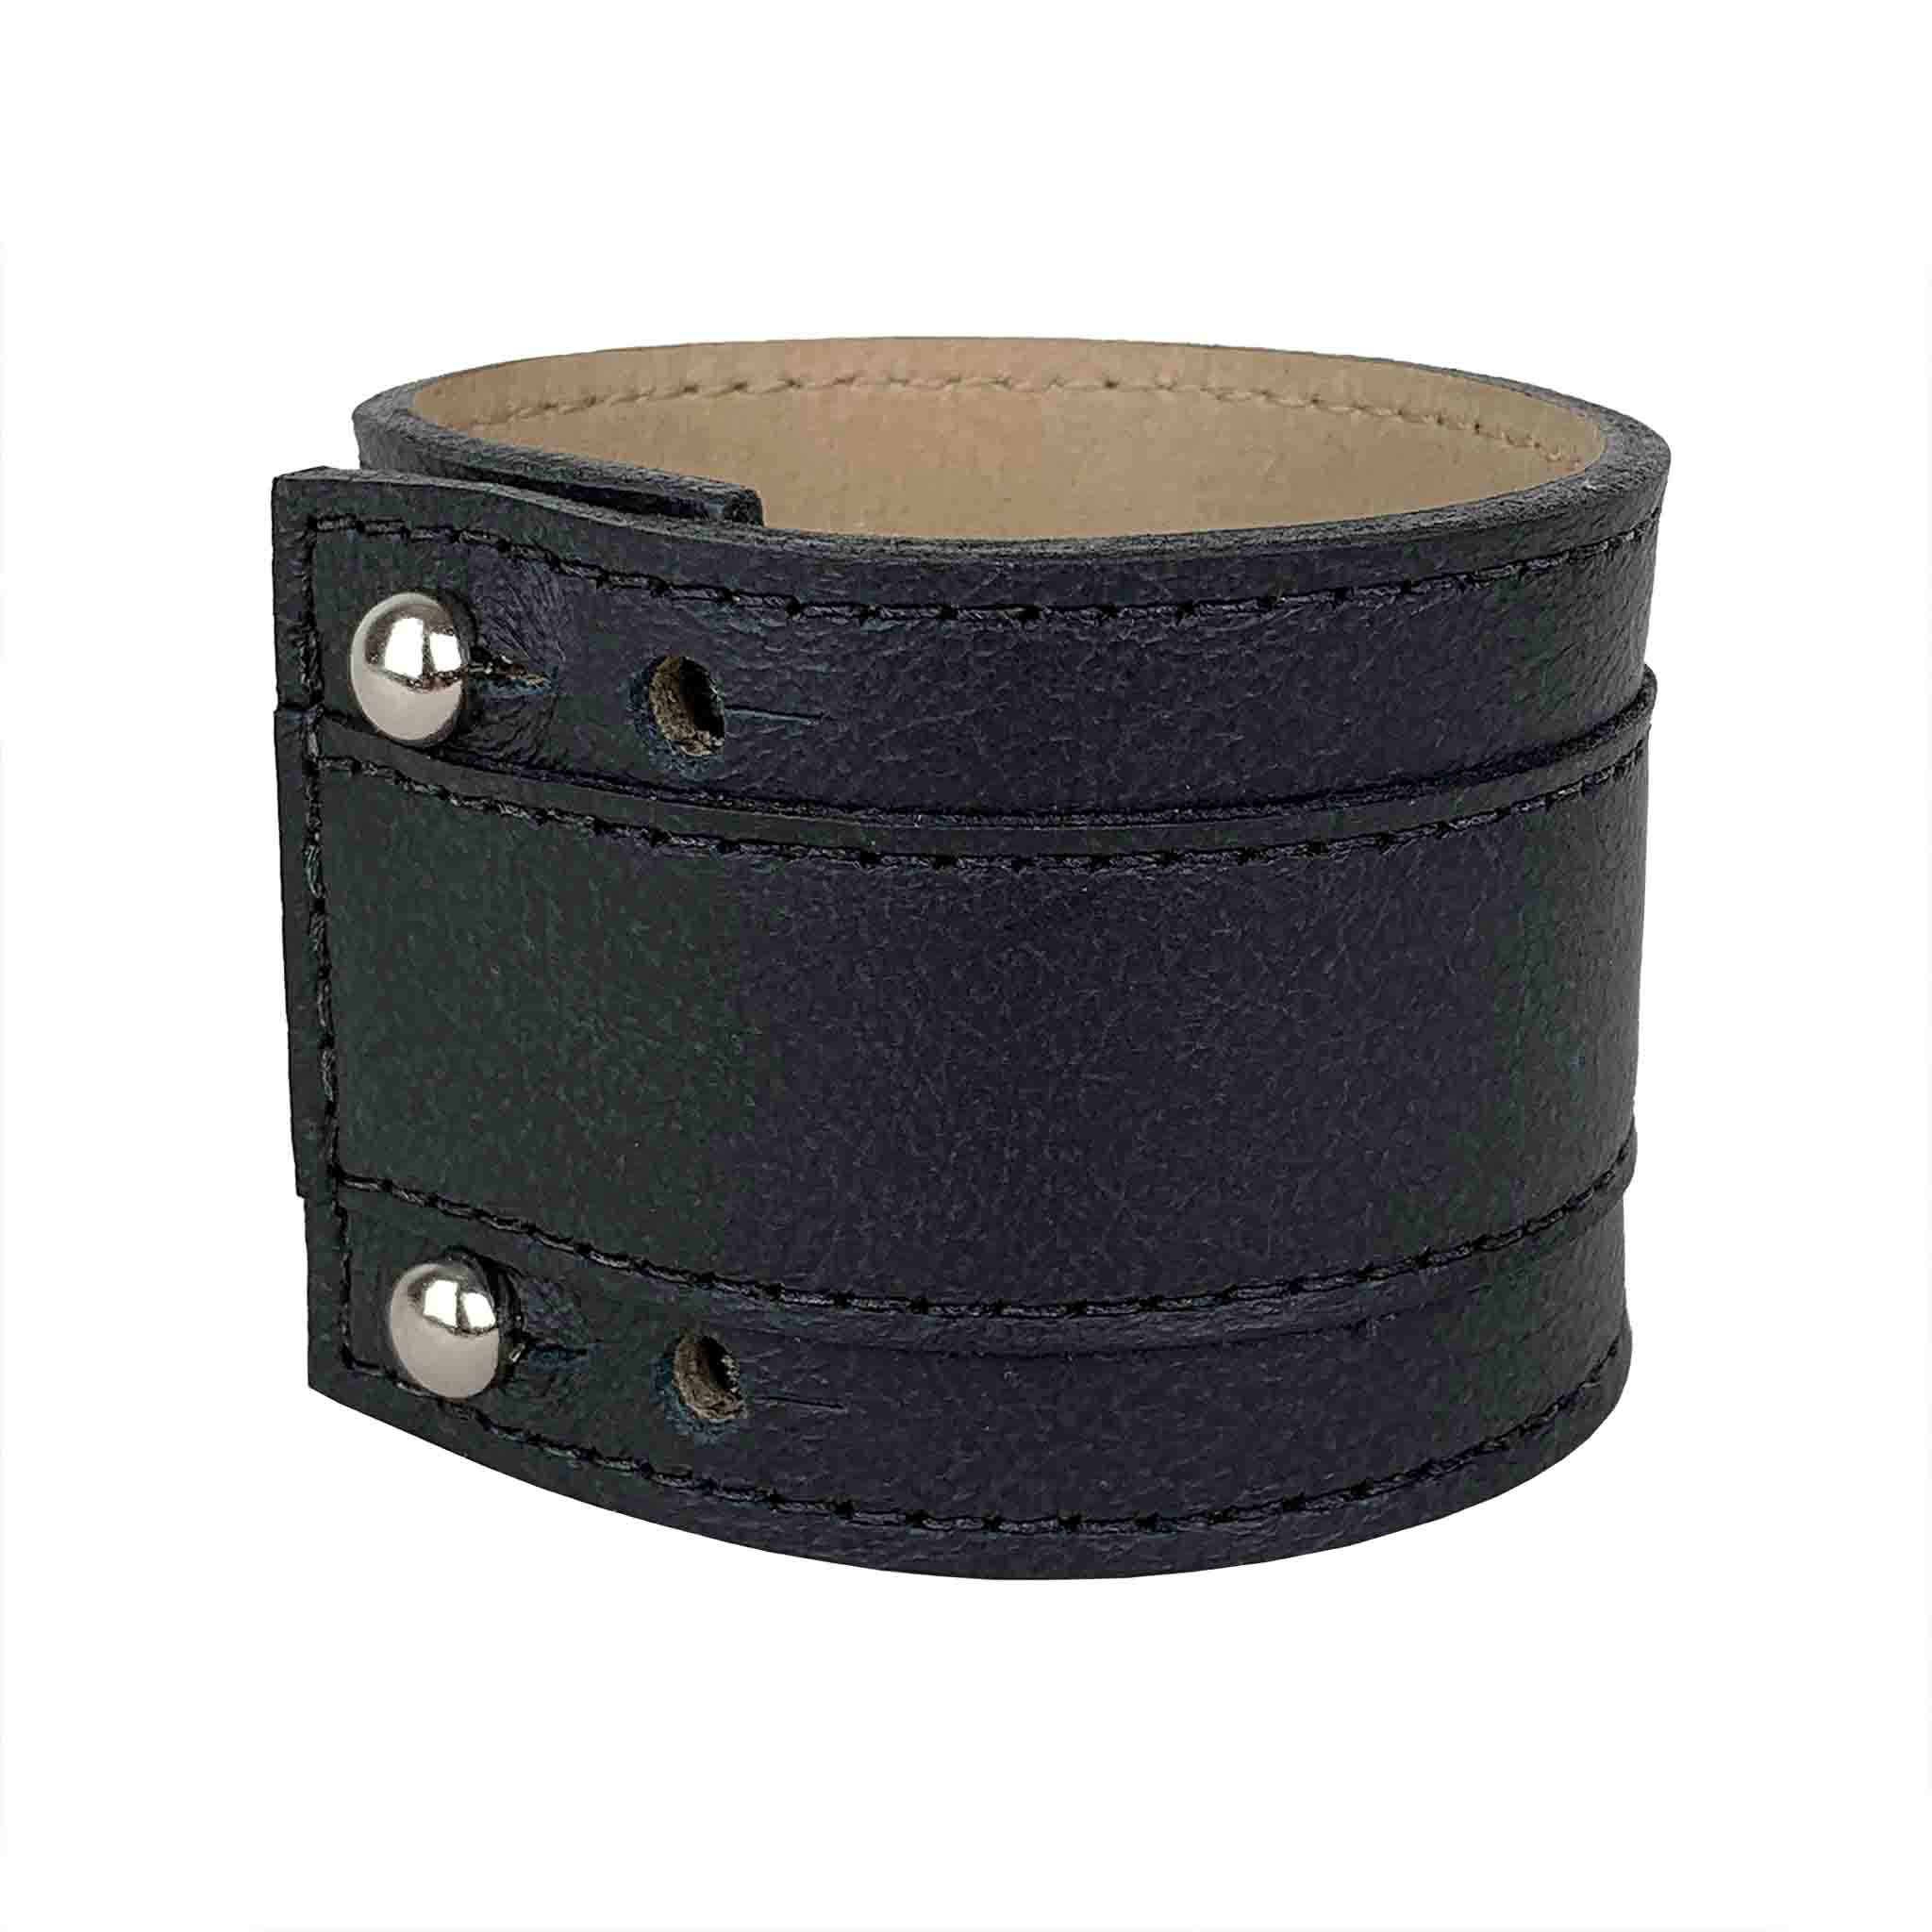 BLACK LEATHER CUFF MEN'S GROSCHEN